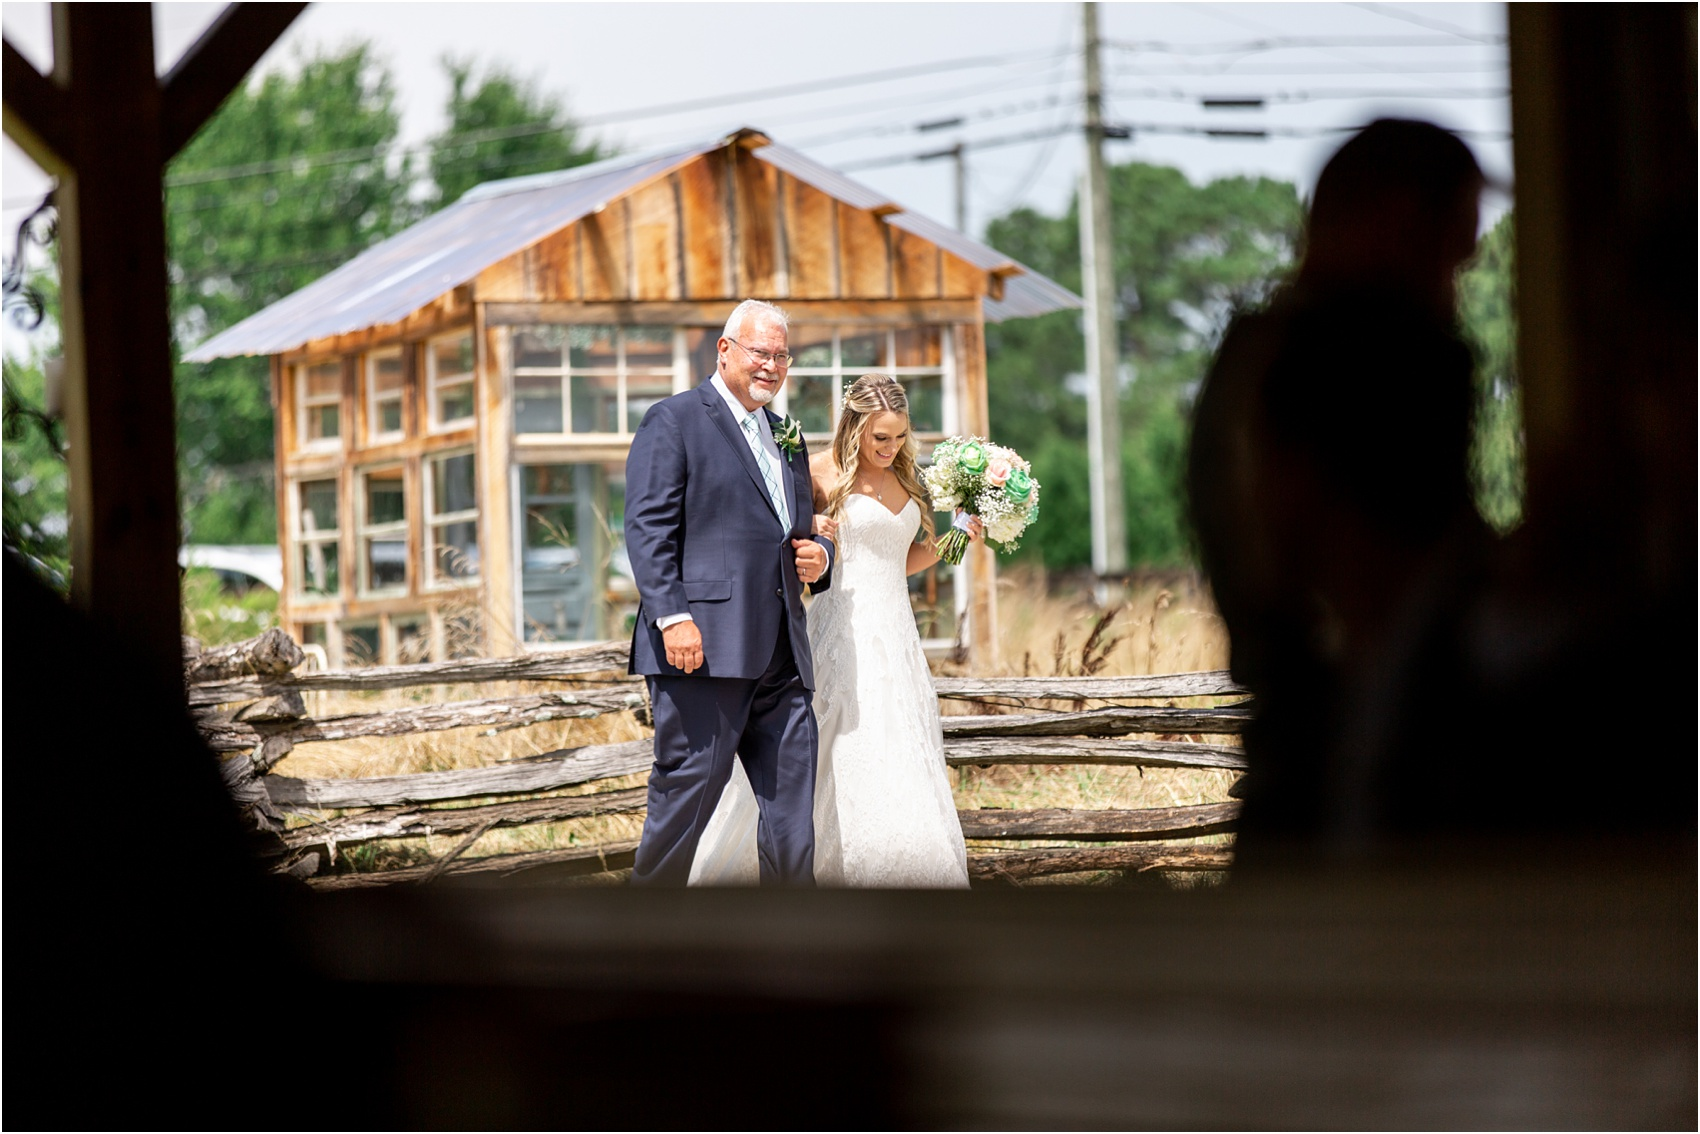 Savannah Eve Photography LLC- Wandolowski-Boyer Wedding-Blog-37.jpg